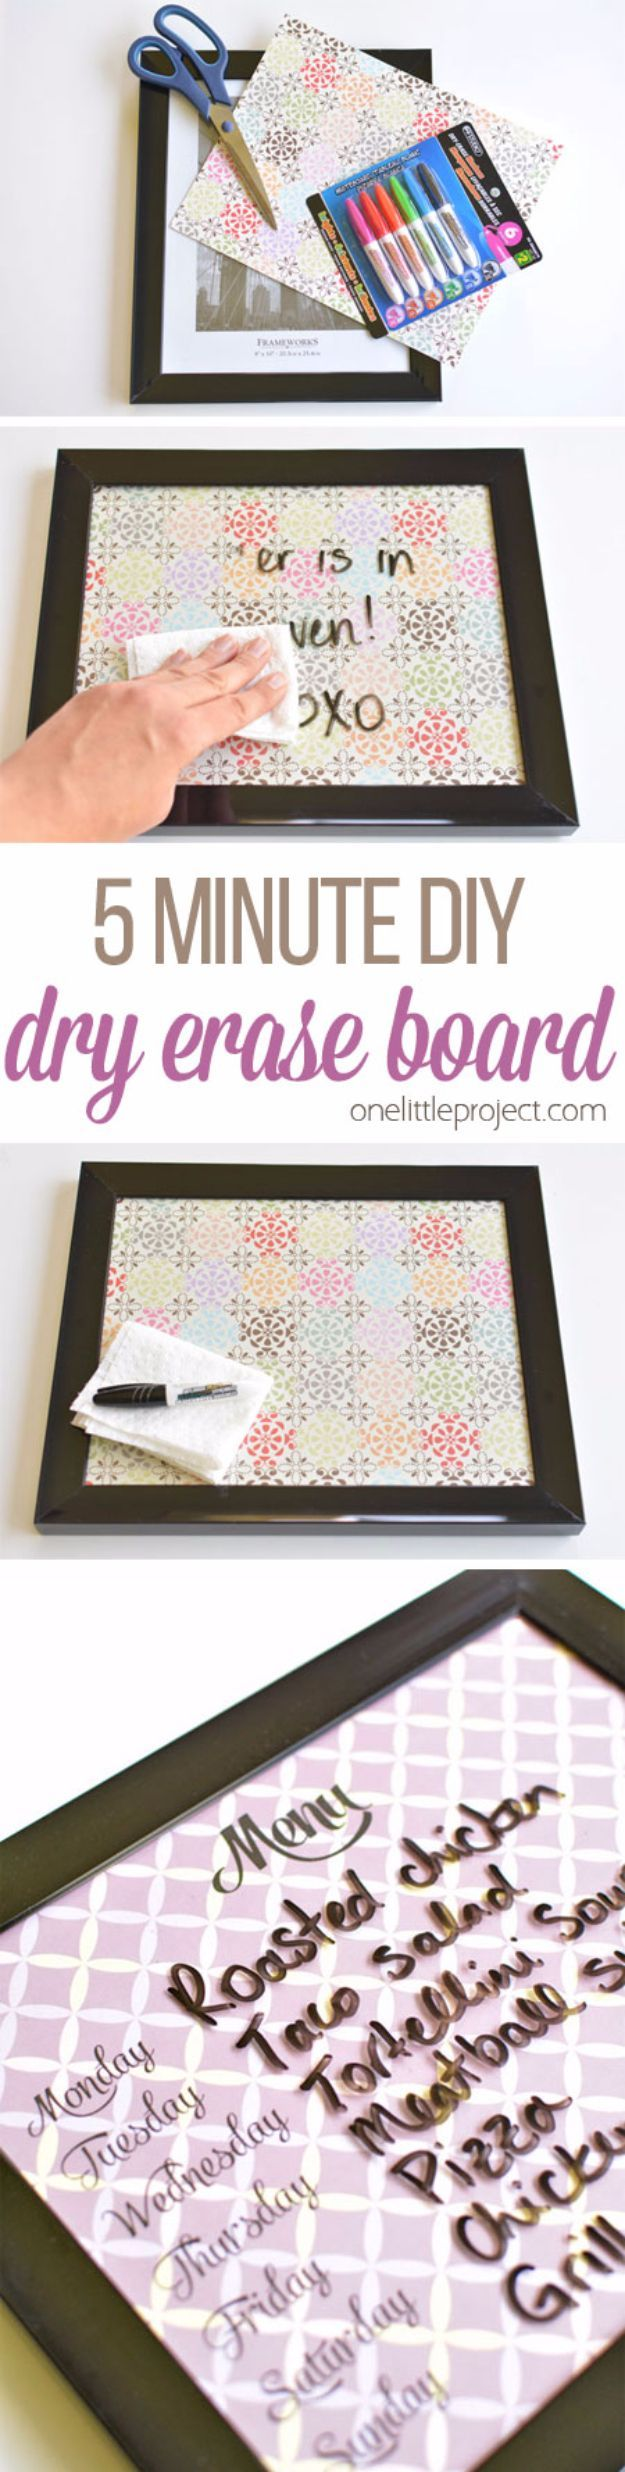 41 of the Easiest DIYs Ever! Best Ideas for Crafts #craftstomakeandsell